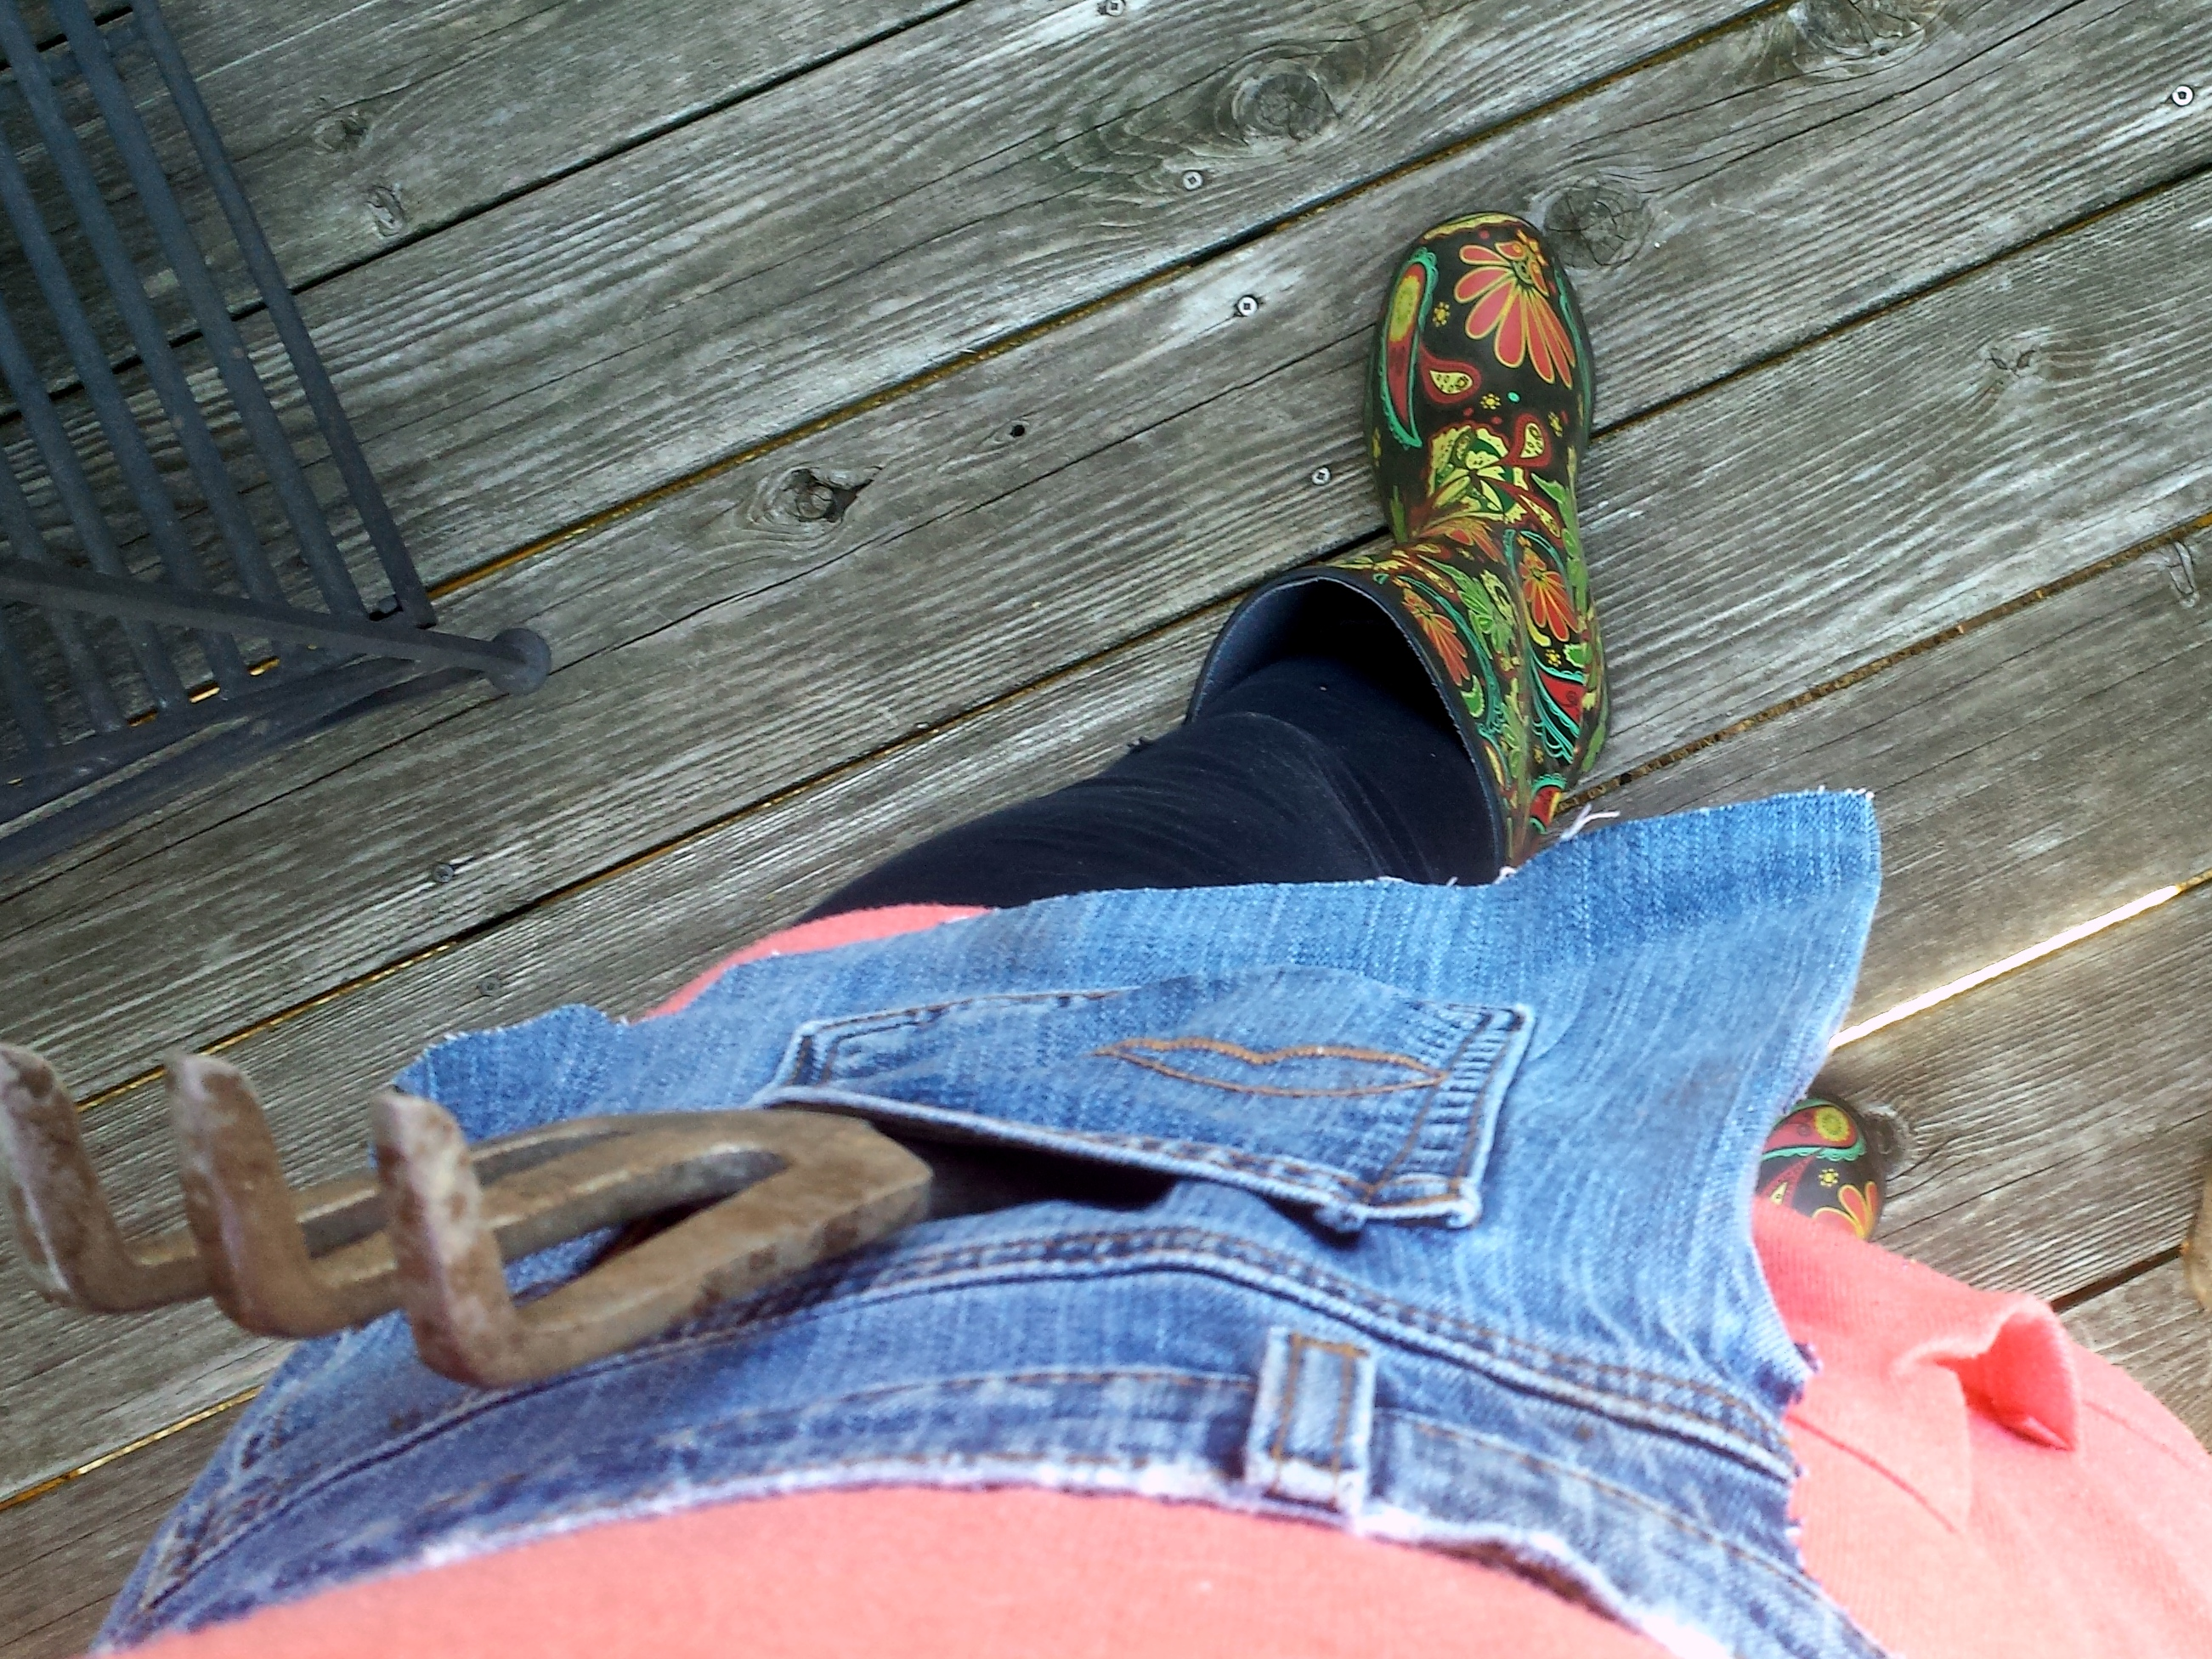 Blue apron how to recycle - Recycling An Old Pair Of Jeans